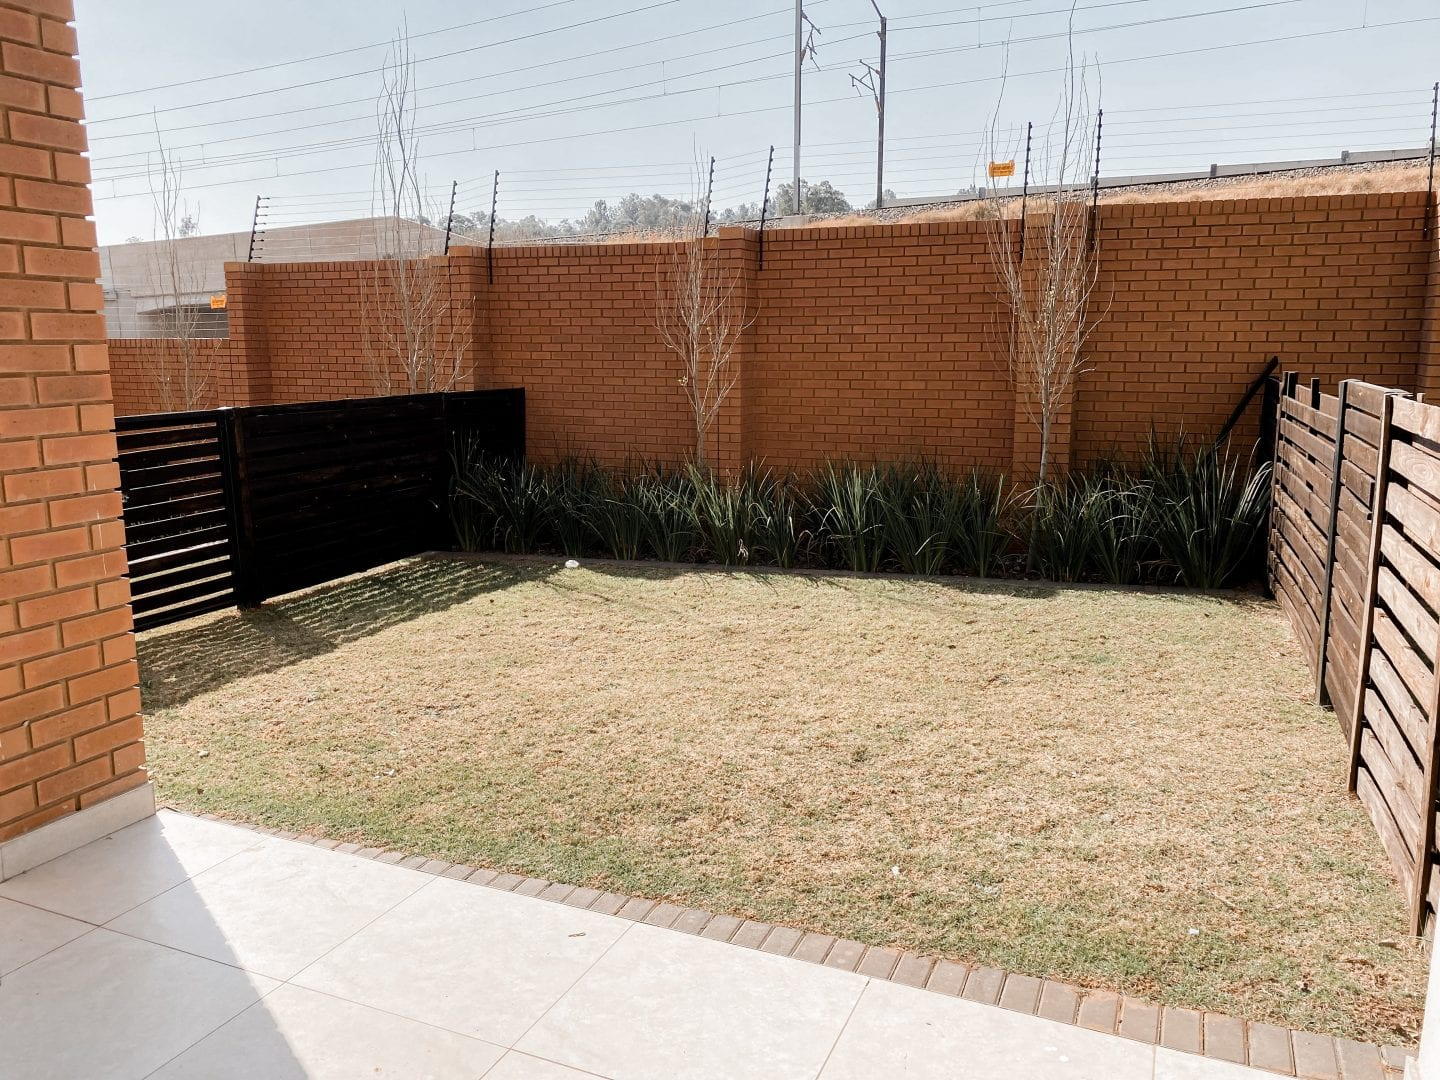 Empty garden with fencing, trees and plants